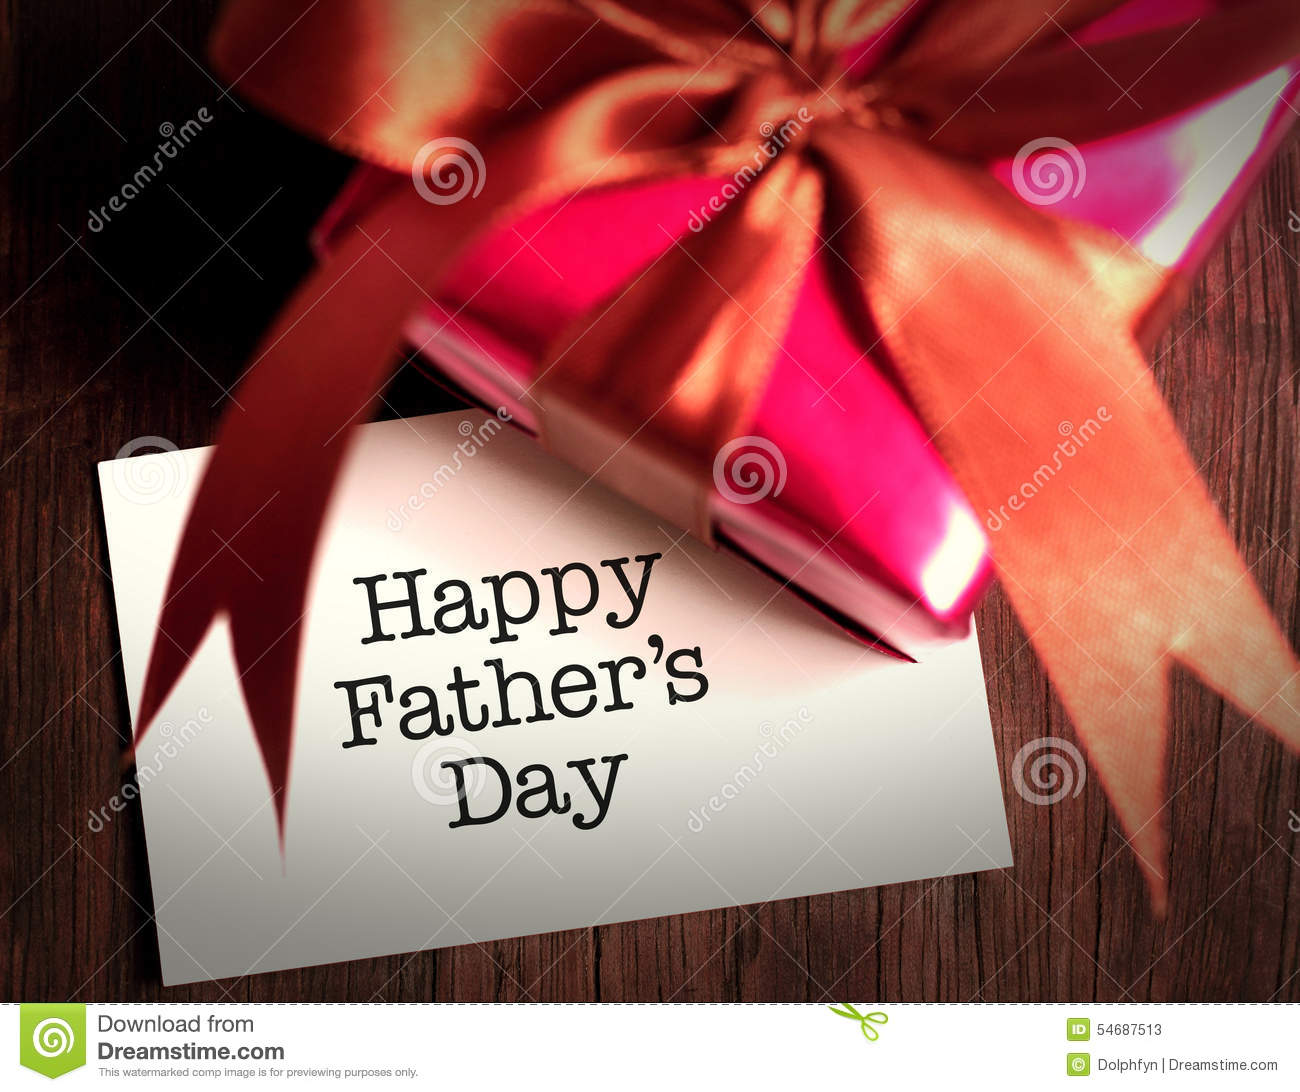 Card of happy fathers day and prensent box